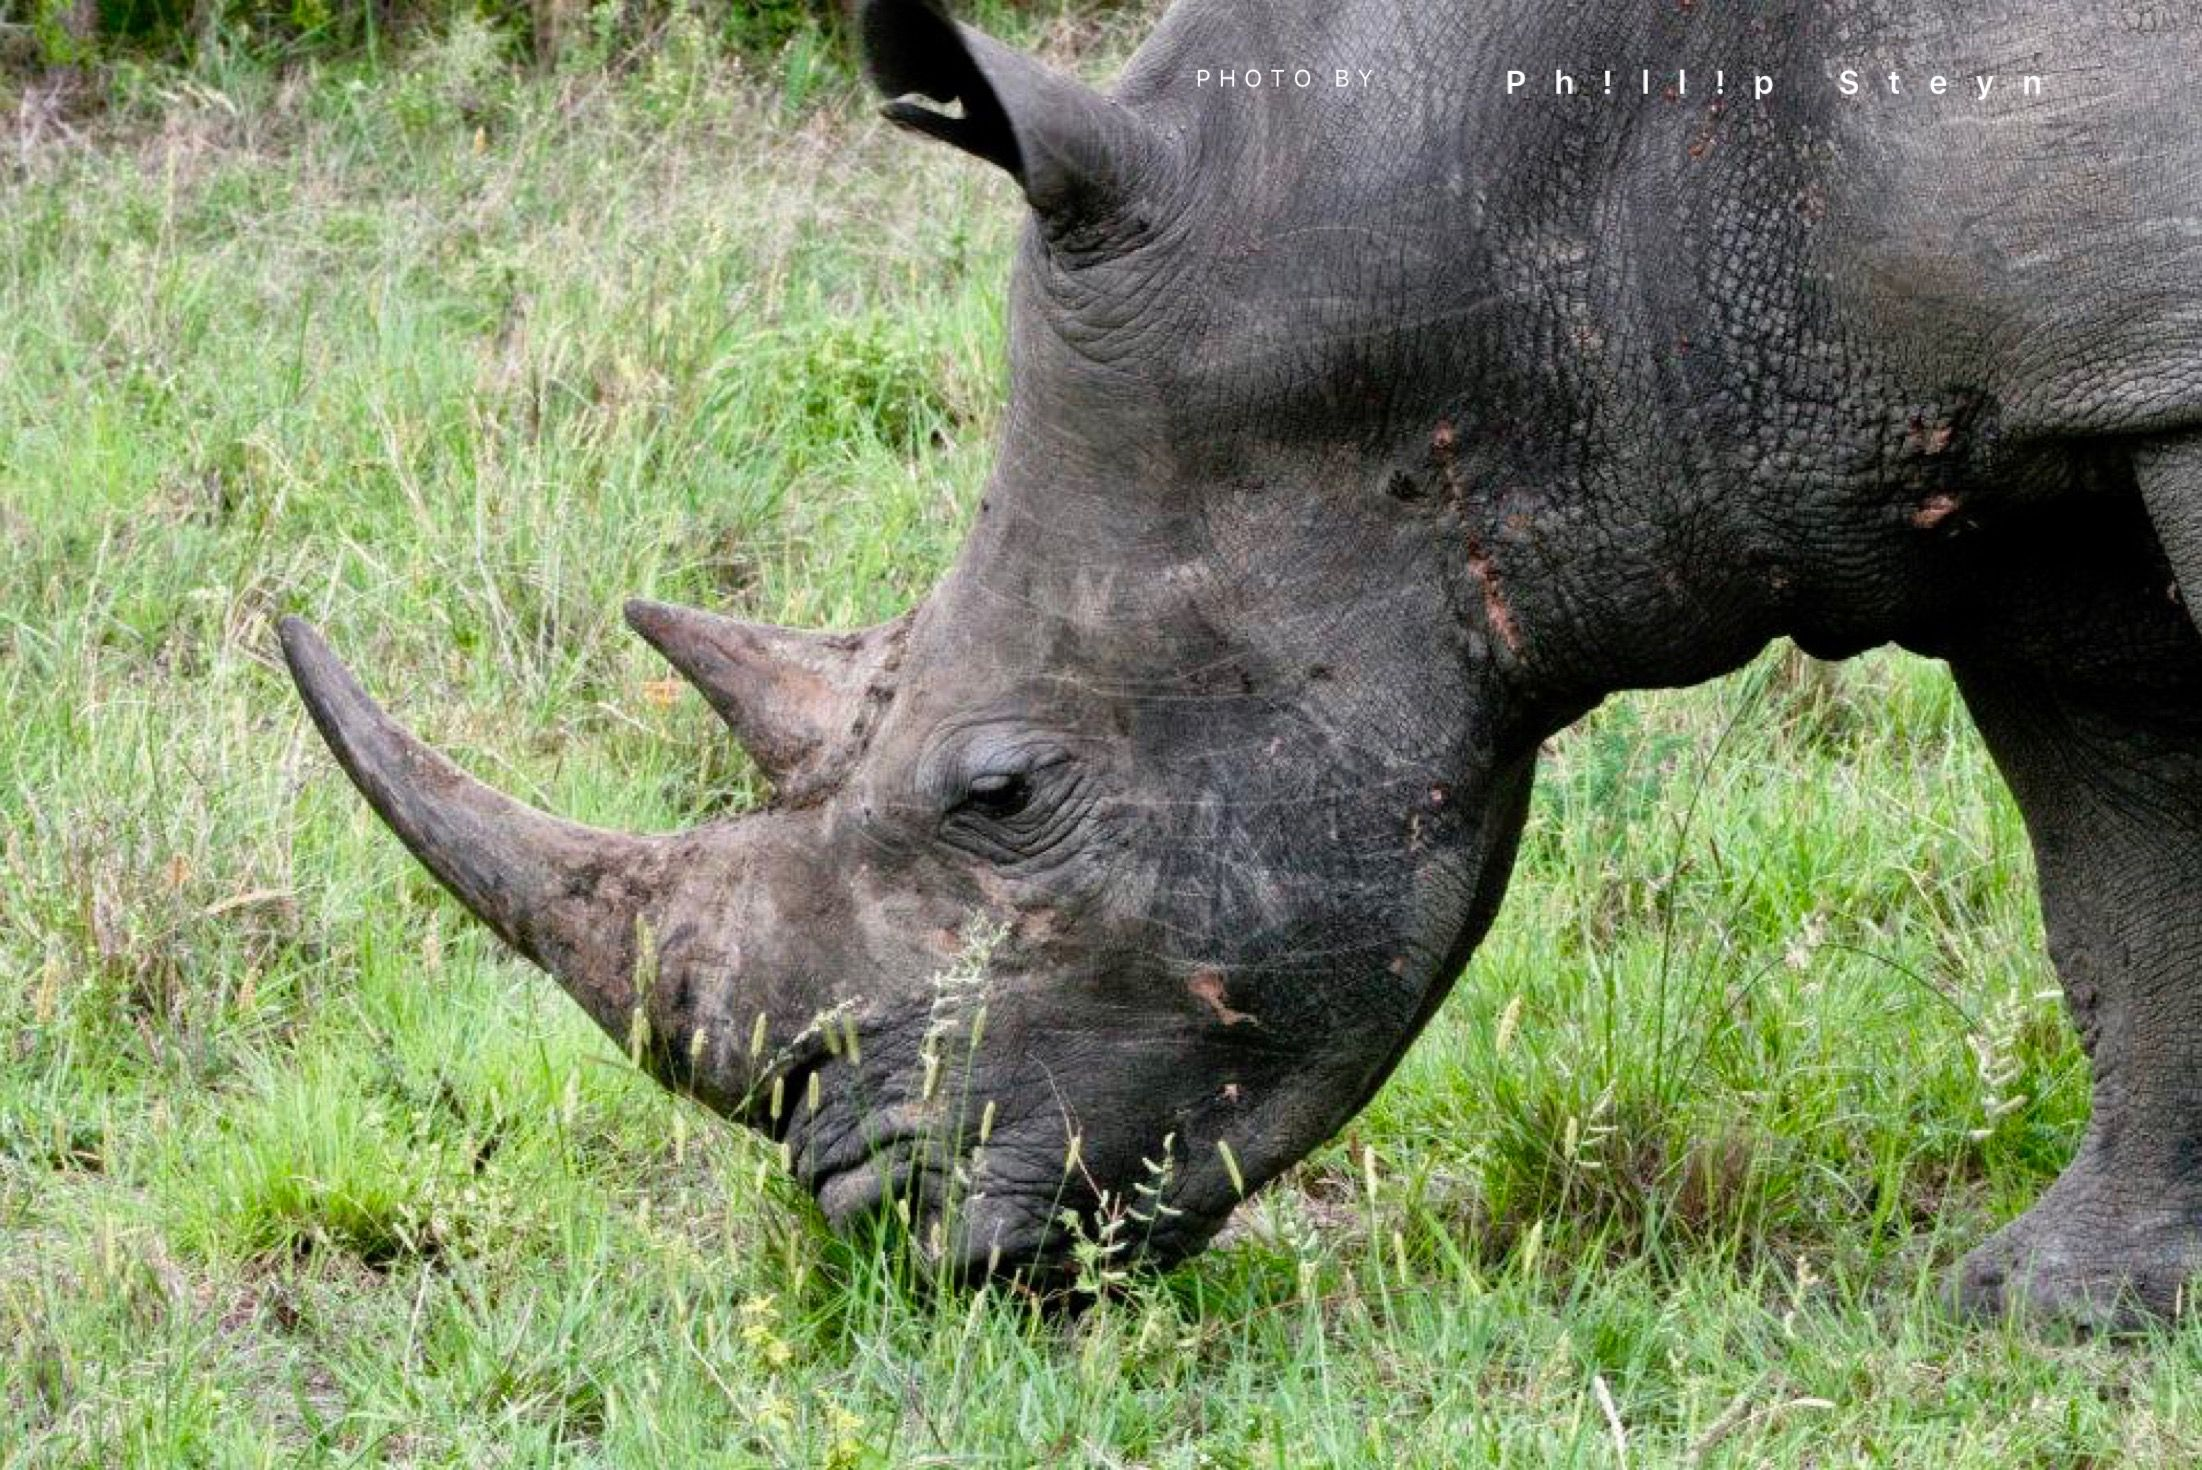 White rhinos feed on grasses and their broad upper lip is adjusted to this type of food (hence the synonym square-lipped).